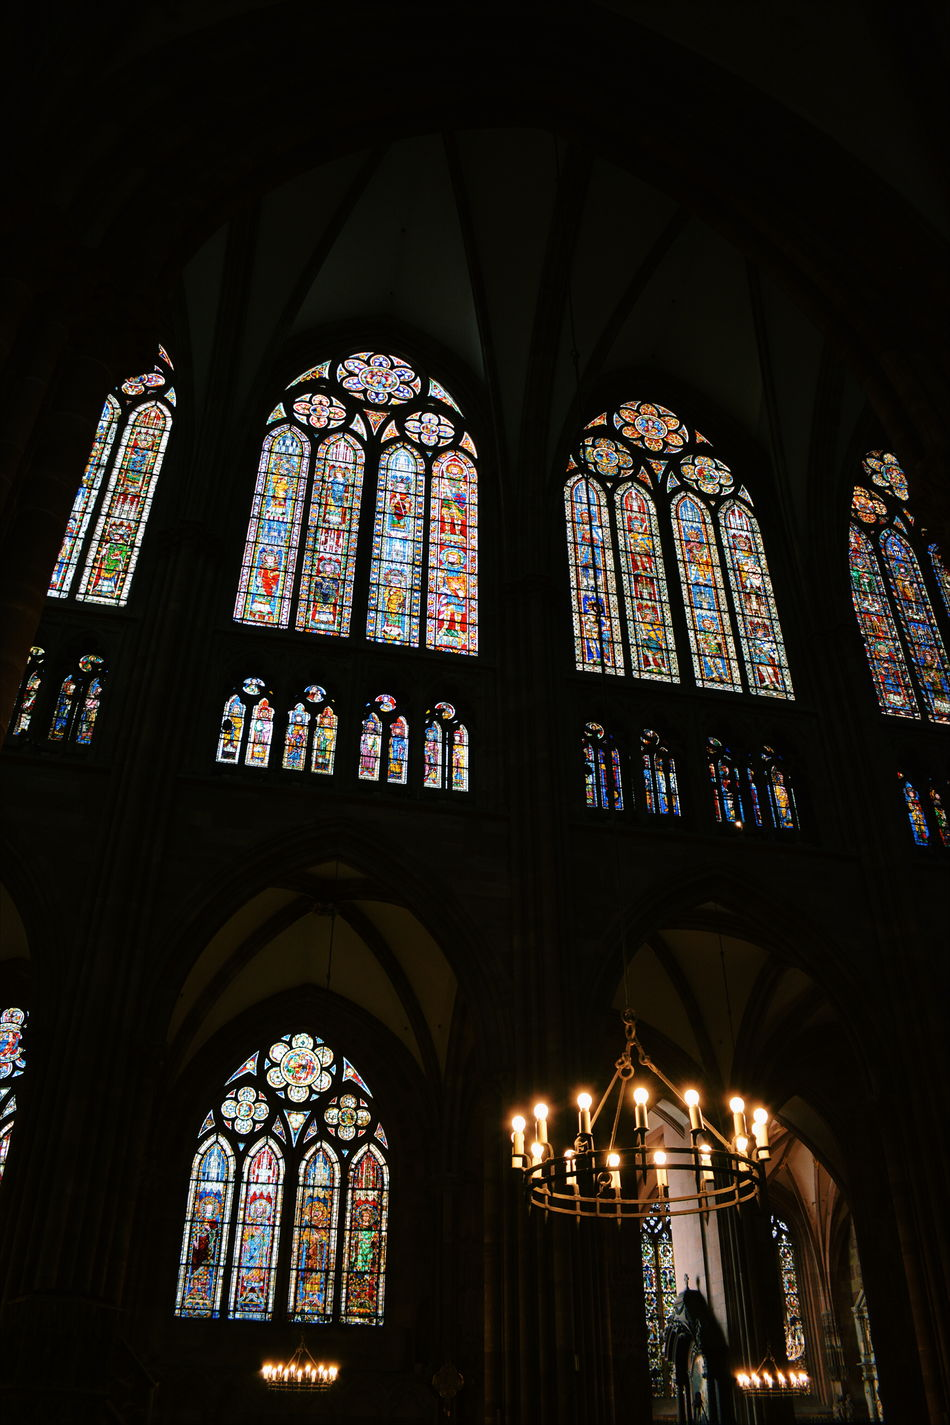 Arch Architecture Built Structure Cathedral Church Day Indoors  Low Angle View No People Place Of Worship Religion Stained Stained Glass Stained Glass Stained Glass Window Travel Destinations Window Windows Art Is Everywhere